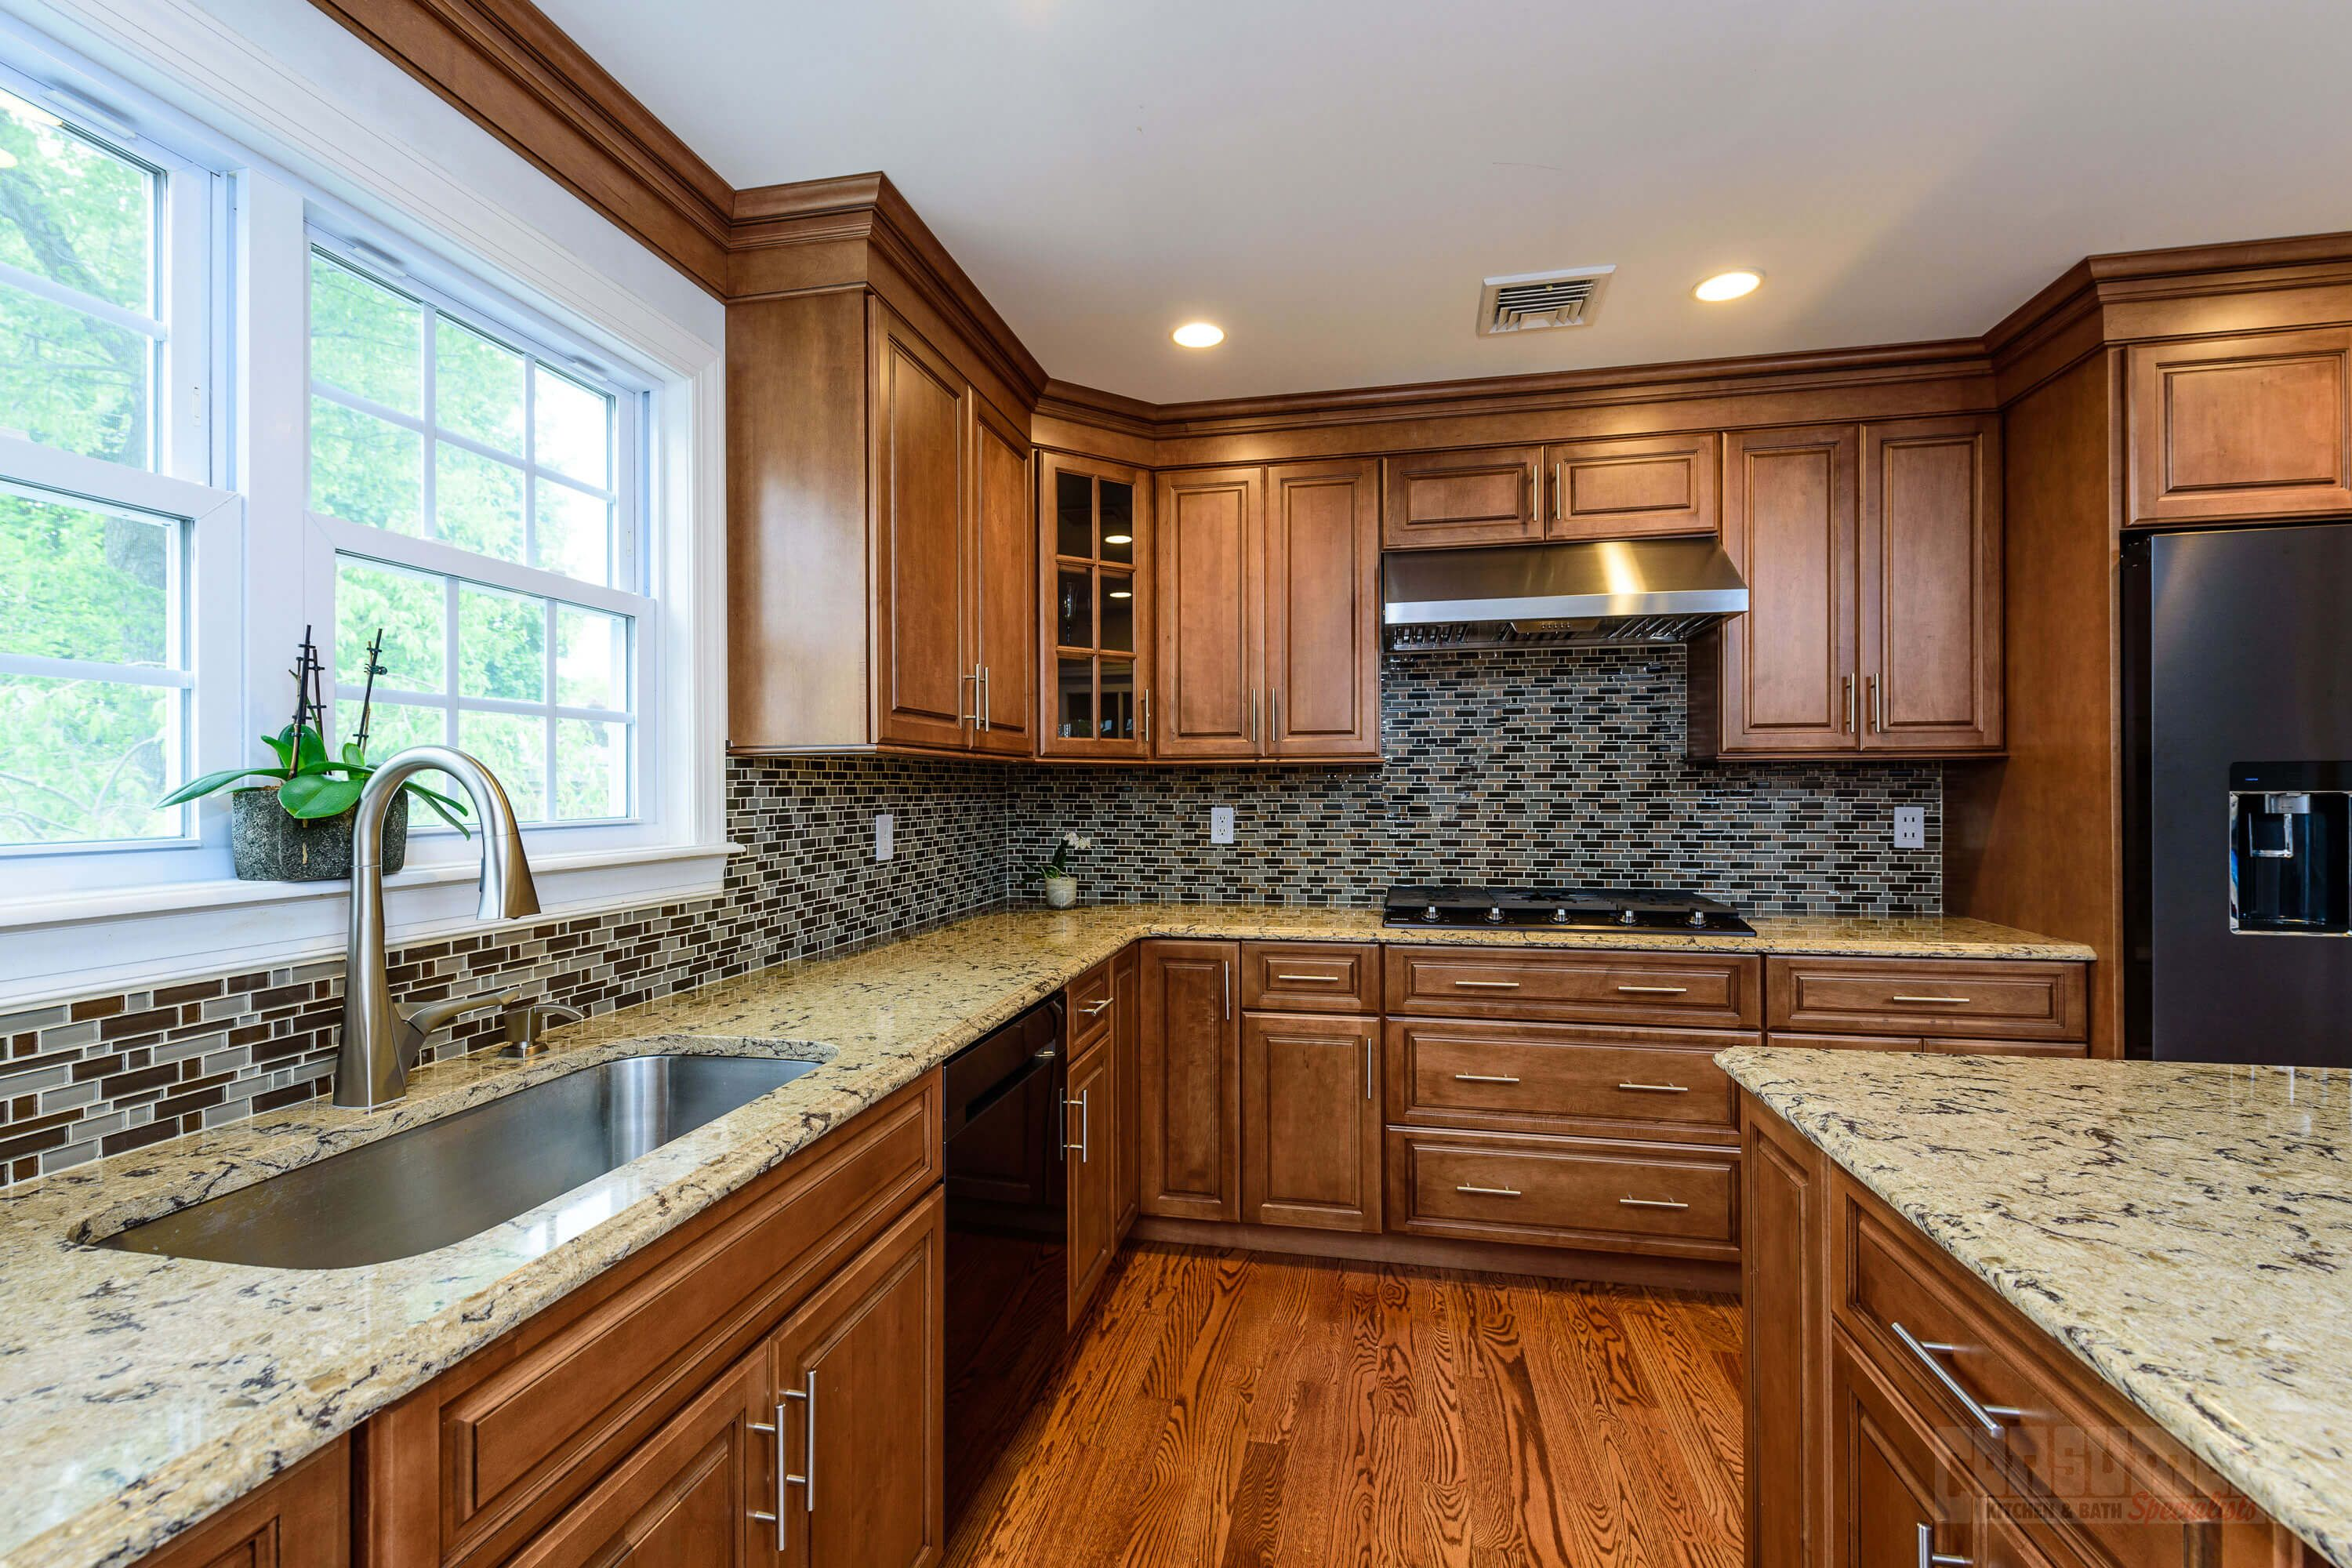 Pin By Consumers Kitchens Baths On Bellmore Beauty With Images